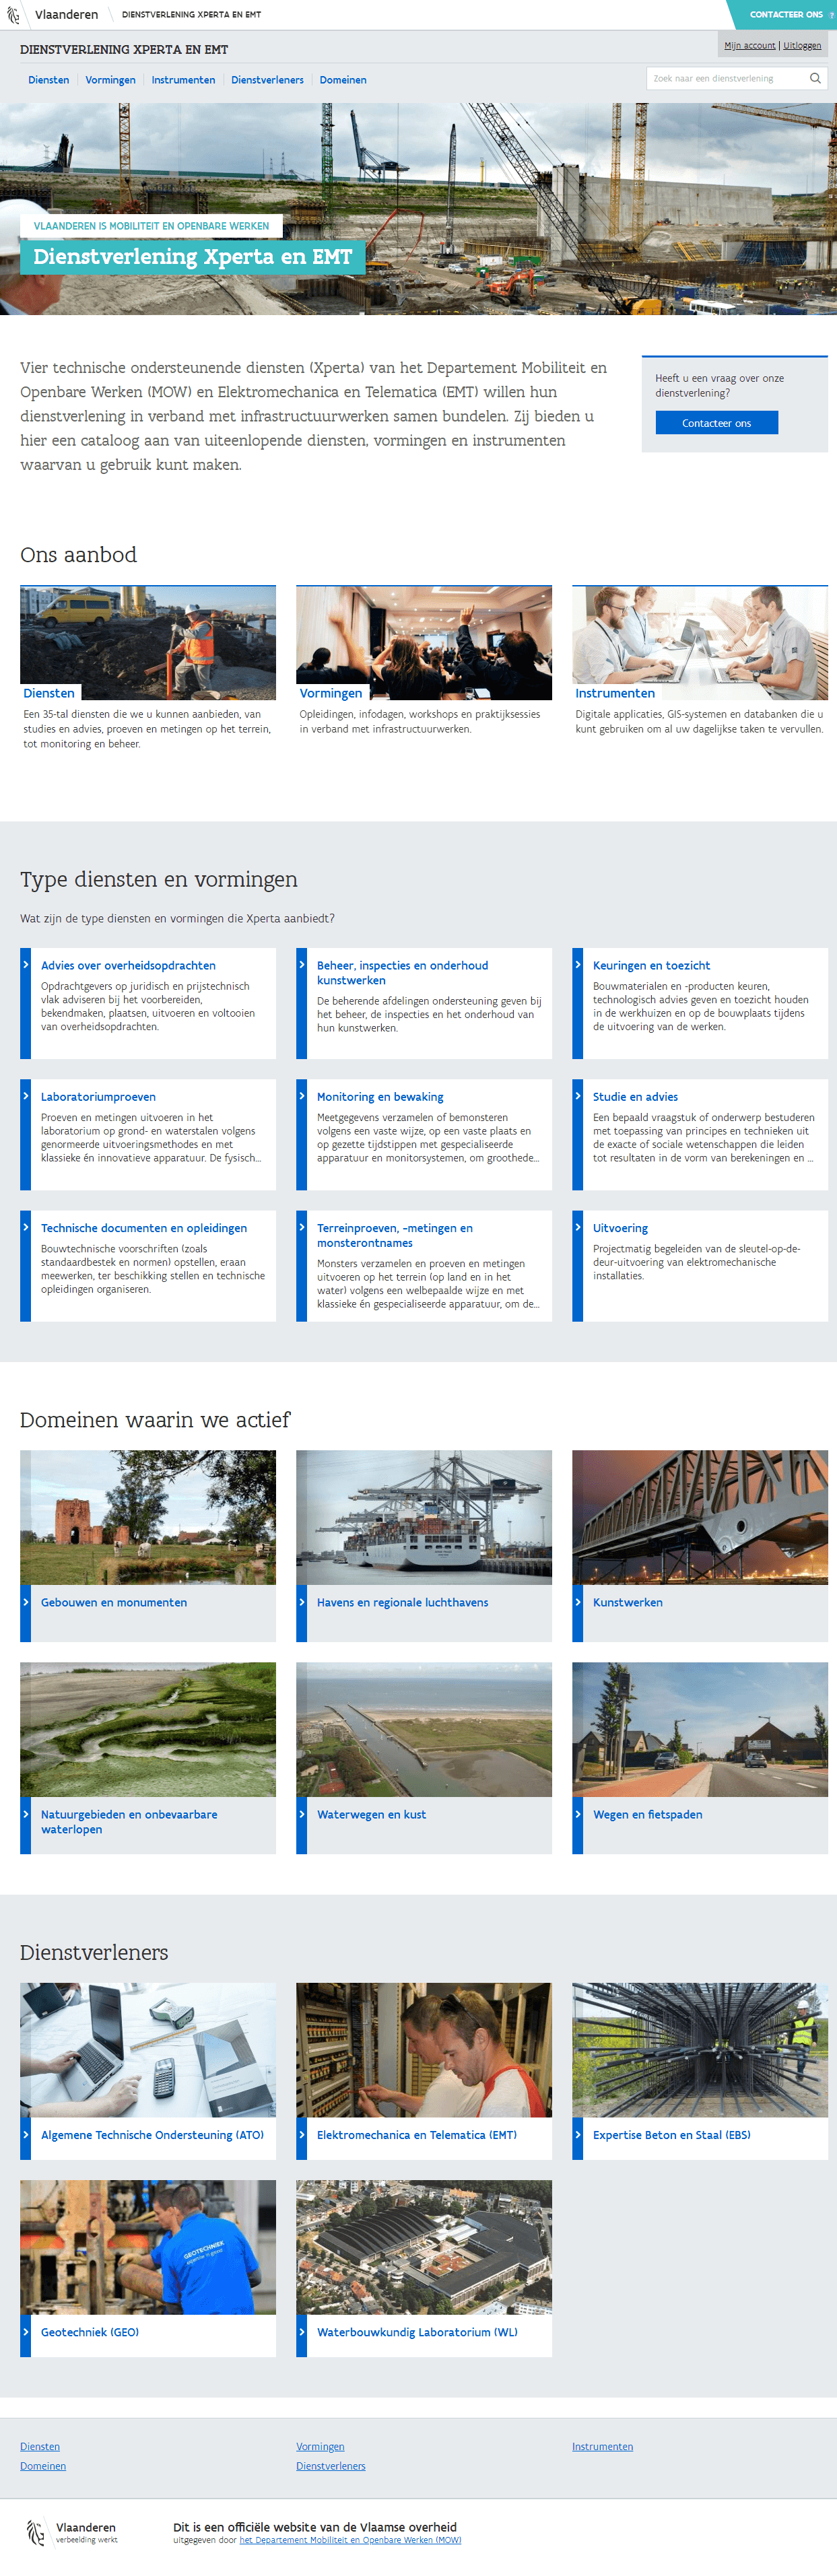 Screenshot of the Xperta homepage